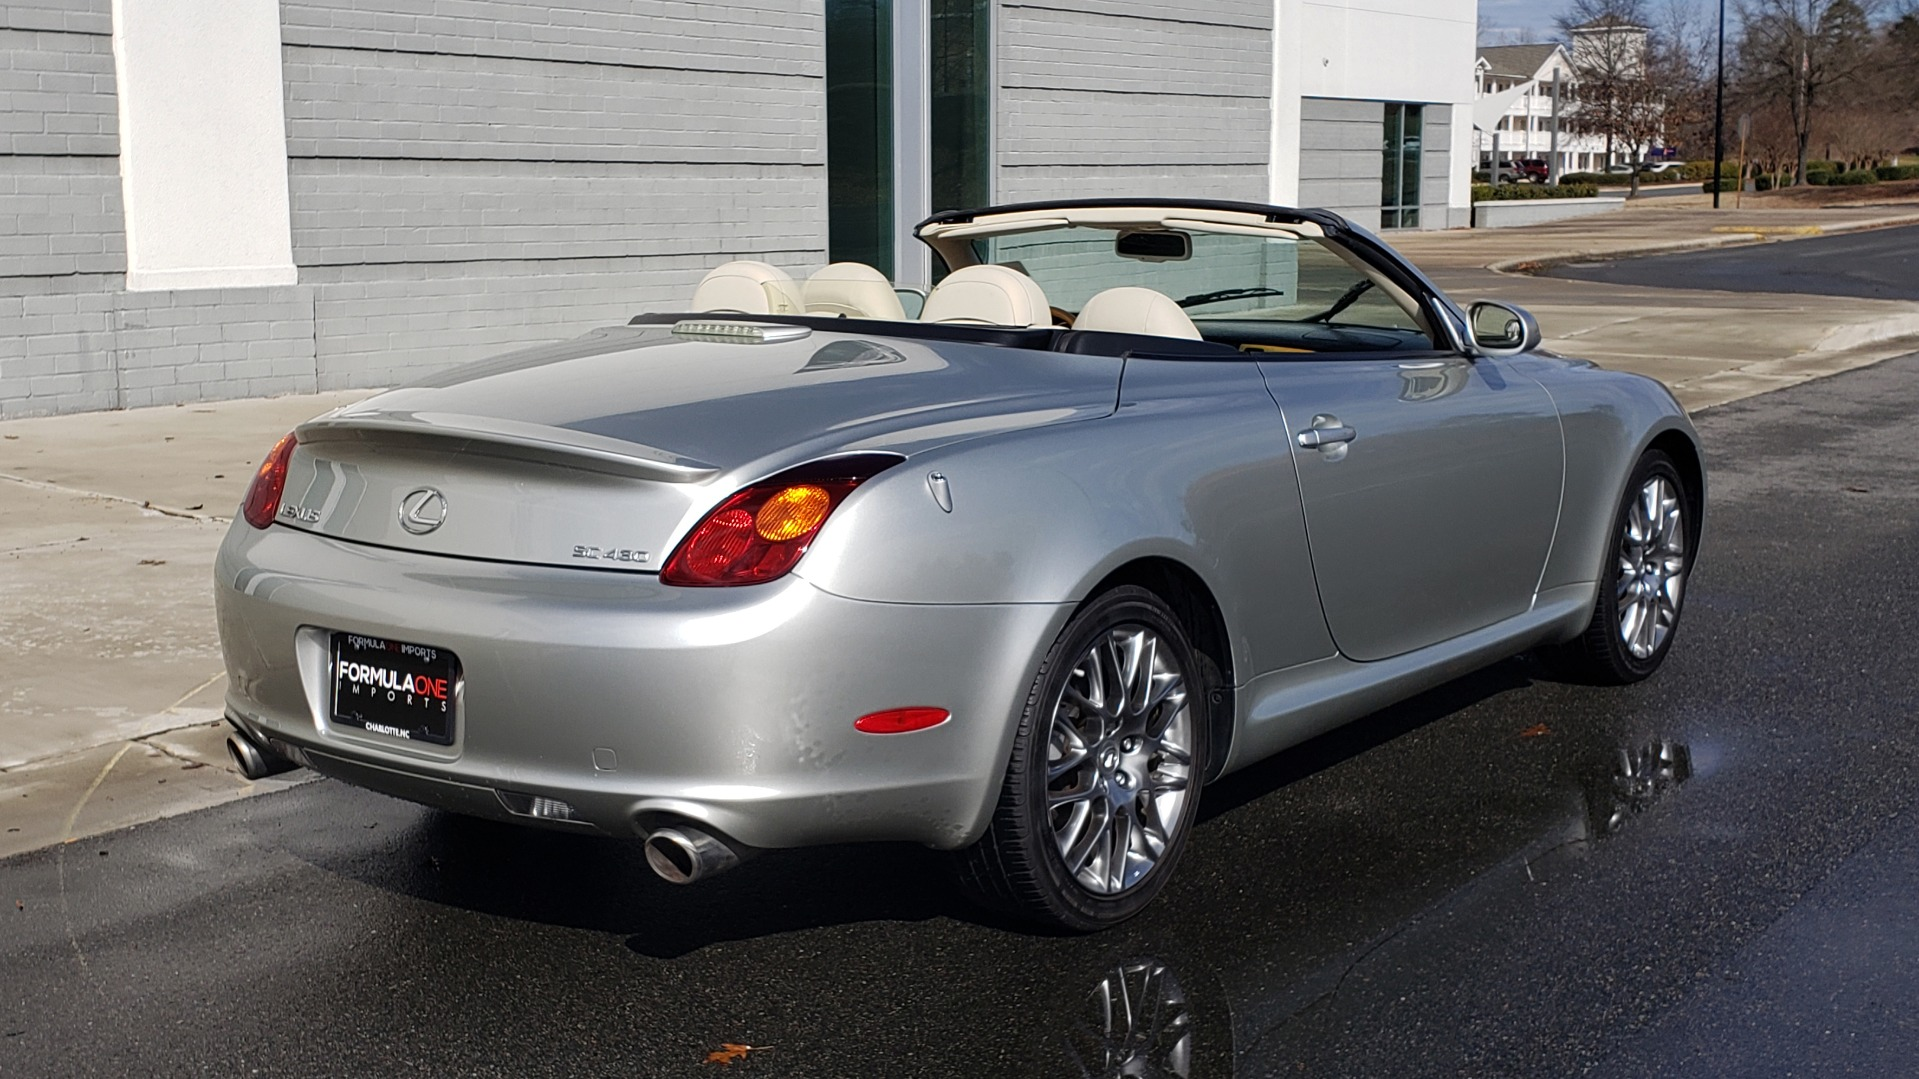 Used 2004 Lexus SC 430 CONVERTIBLE / 4.3L V8 / 5-SPD AUTO / MARK LEVINSON / 18IN WHEELS for sale Sold at Formula Imports in Charlotte NC 28227 16